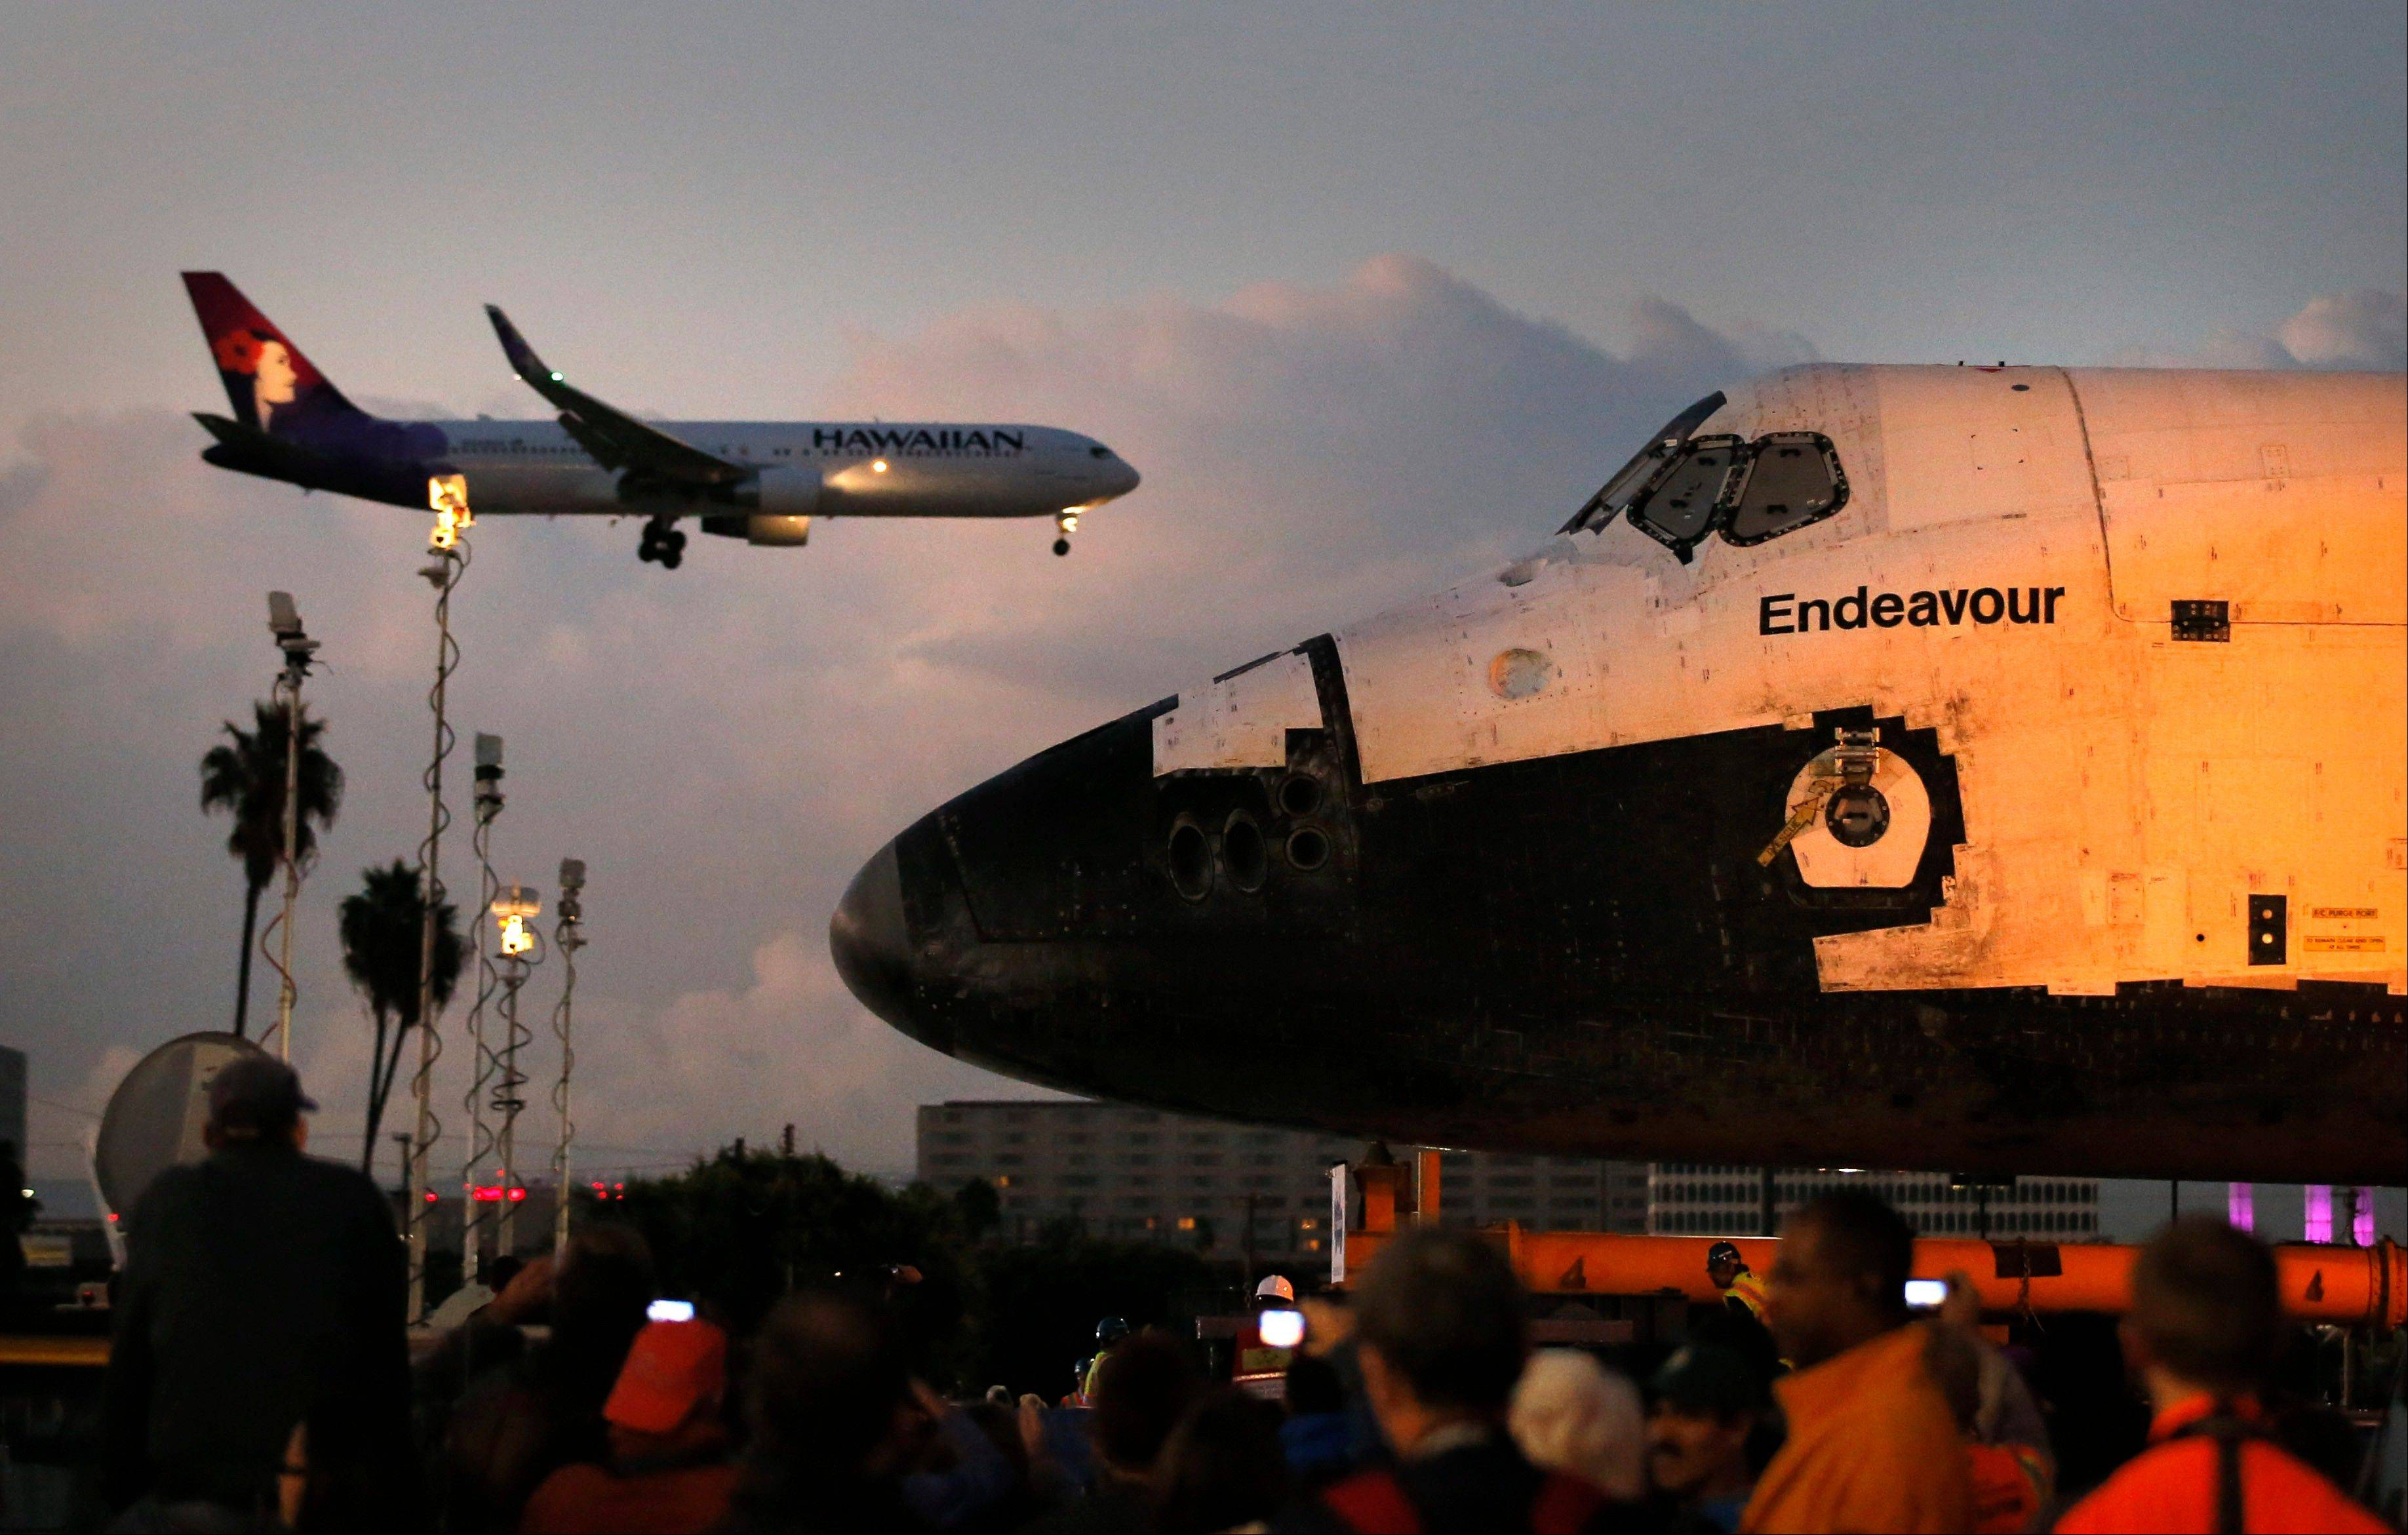 The space shuttle Endeavour sits in a strip mall as a Hawaiian Airlines jet approaches a runway at Los Angeles International Airport in Los Angeles, Friday, Oct. 12, 2012. Endeavour's 12-mile road trip kicked off shortly before midnight Thursday as it moved from its hangar at the airport en route to the California Science Center, its ultimate destination.